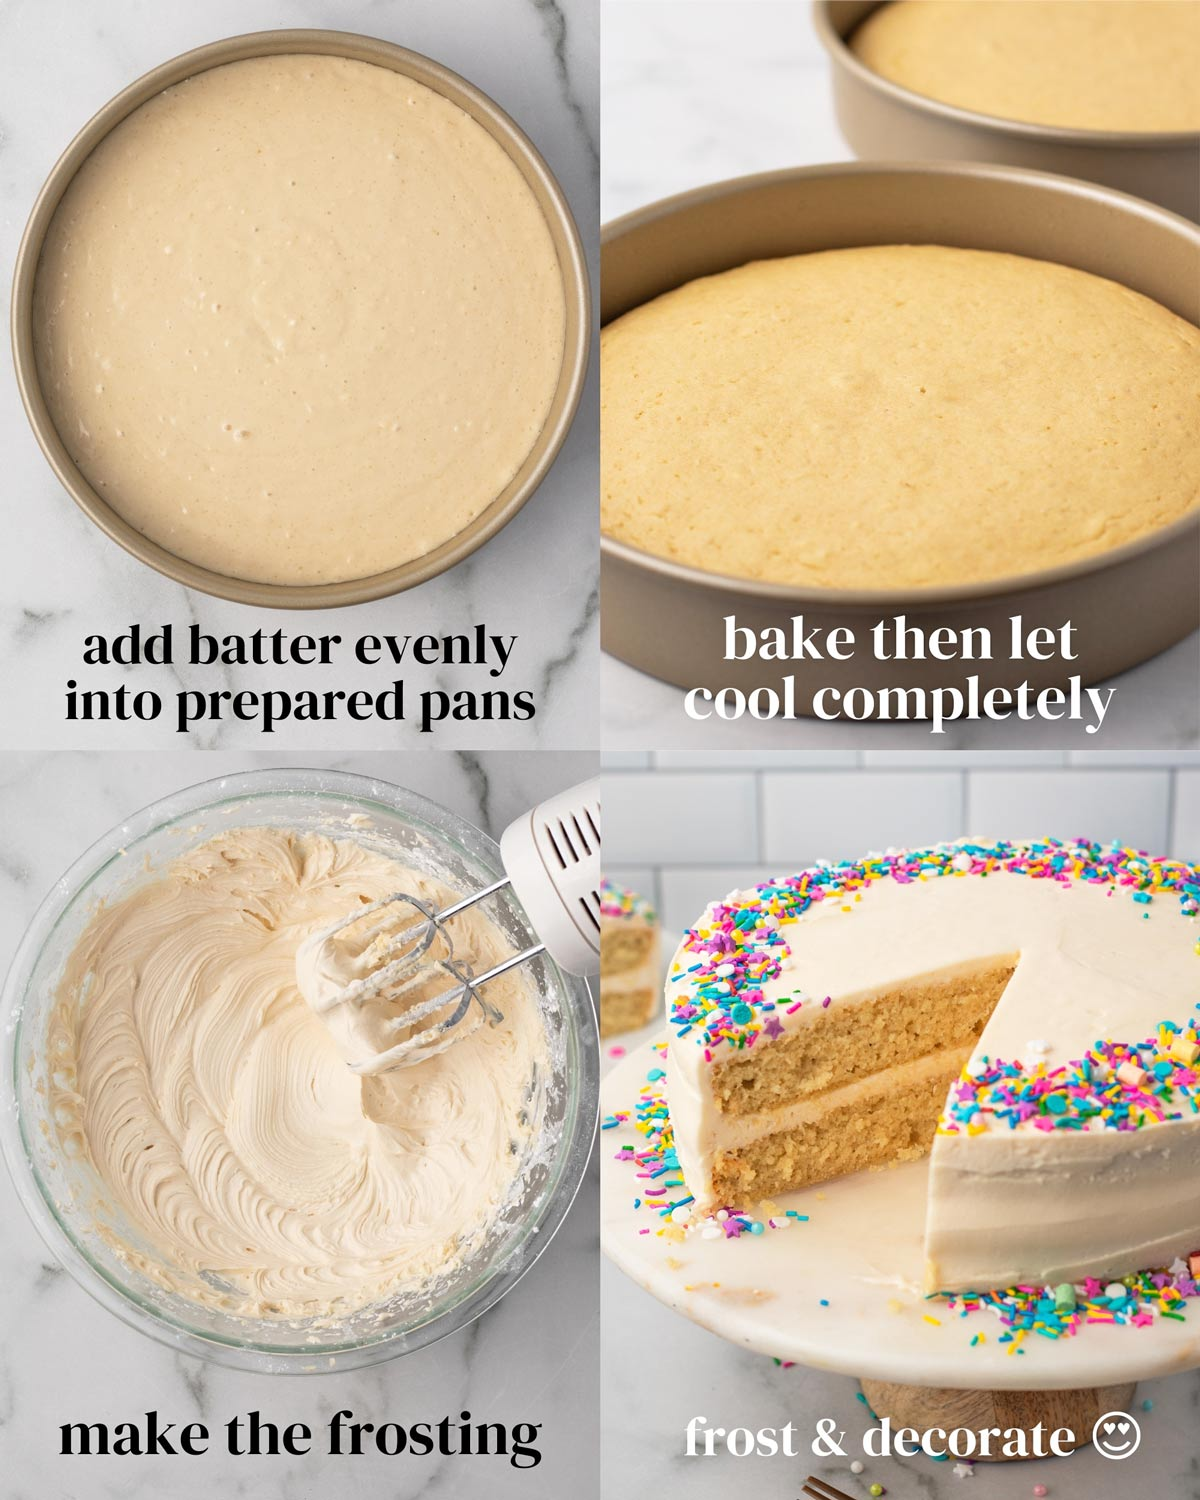 steps to cool vanilla cake and make buttercream frosting and decorate vegan layer cake